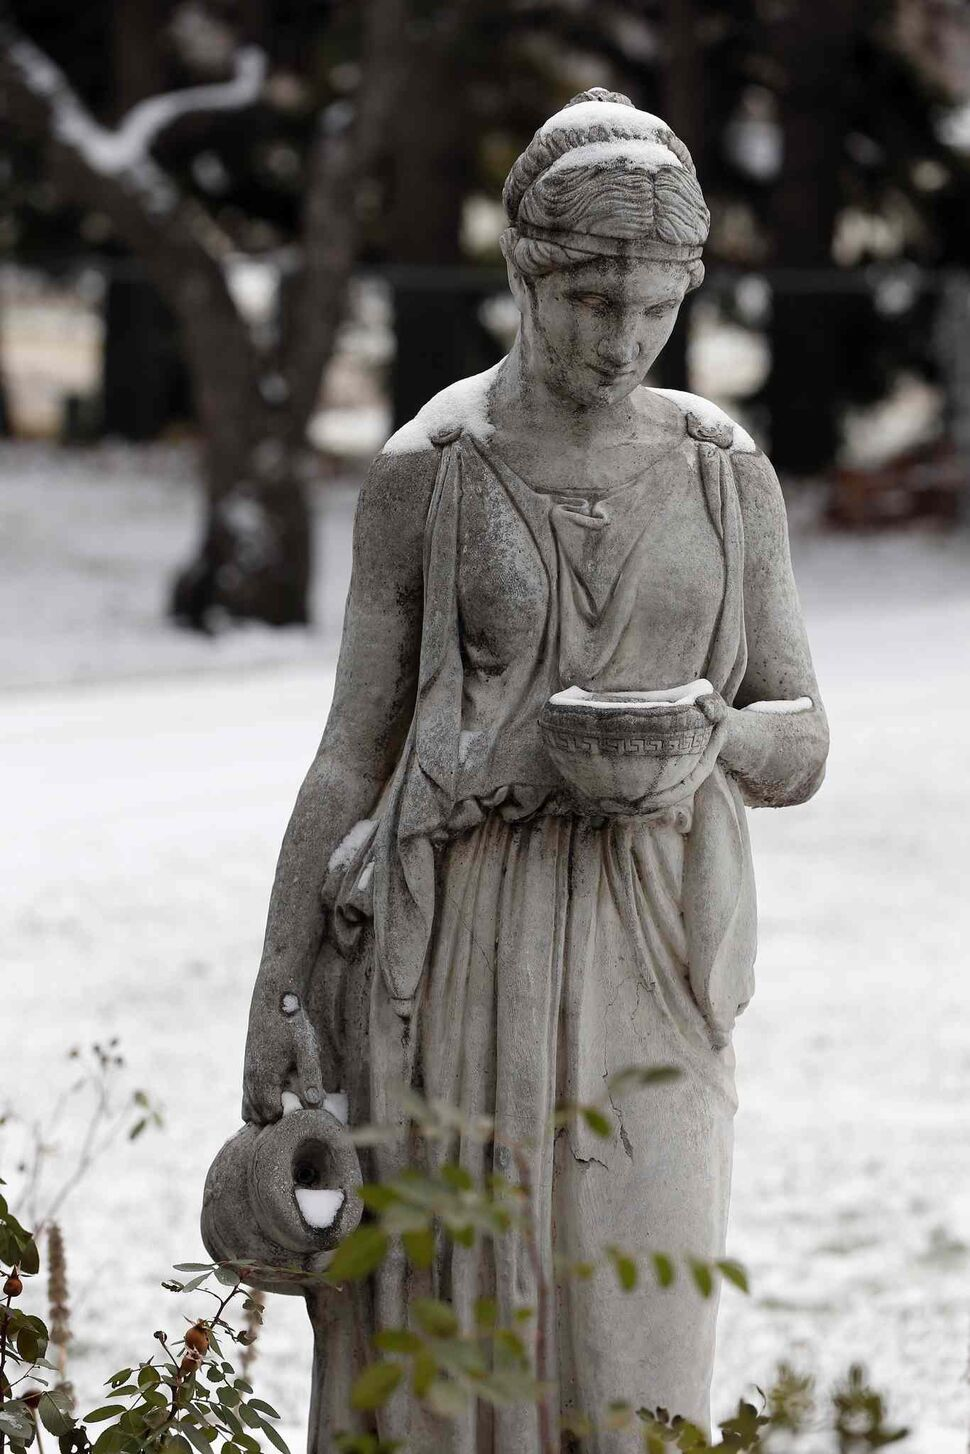 A statue stands in the snow in the backyard. (KEN GIGLIOTTI / WINNIPEG FREE PRESS)